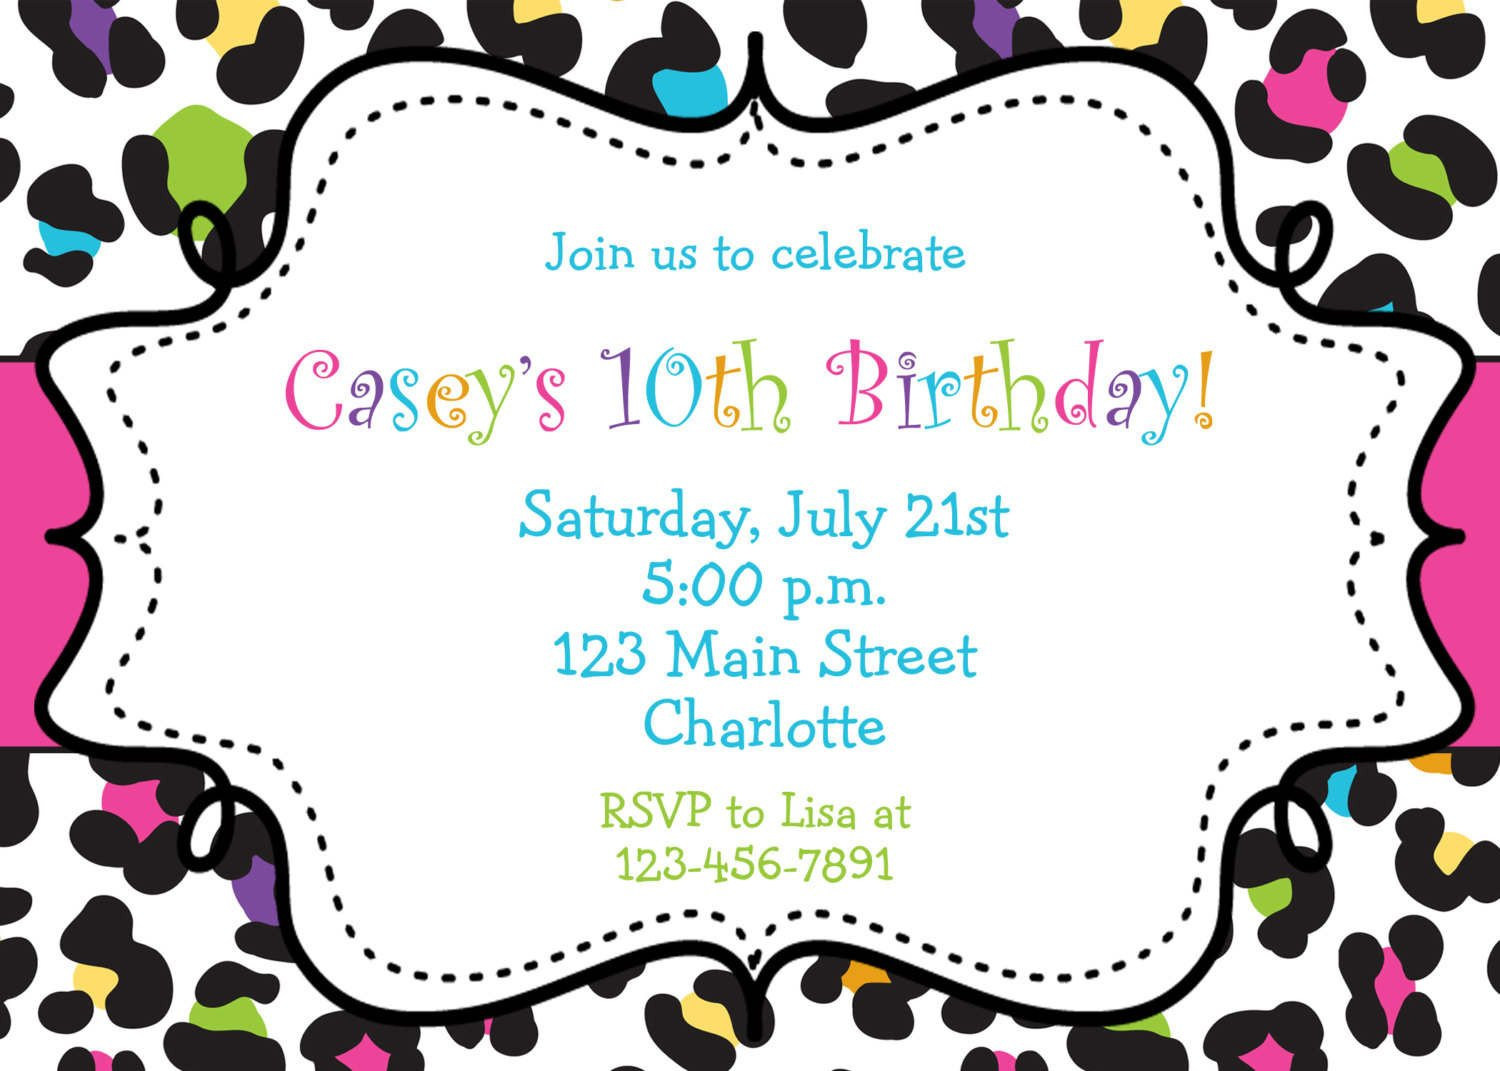 Free Printable Invitation Templates Birthday Invitations Browsing Exclusive Animal Print themed